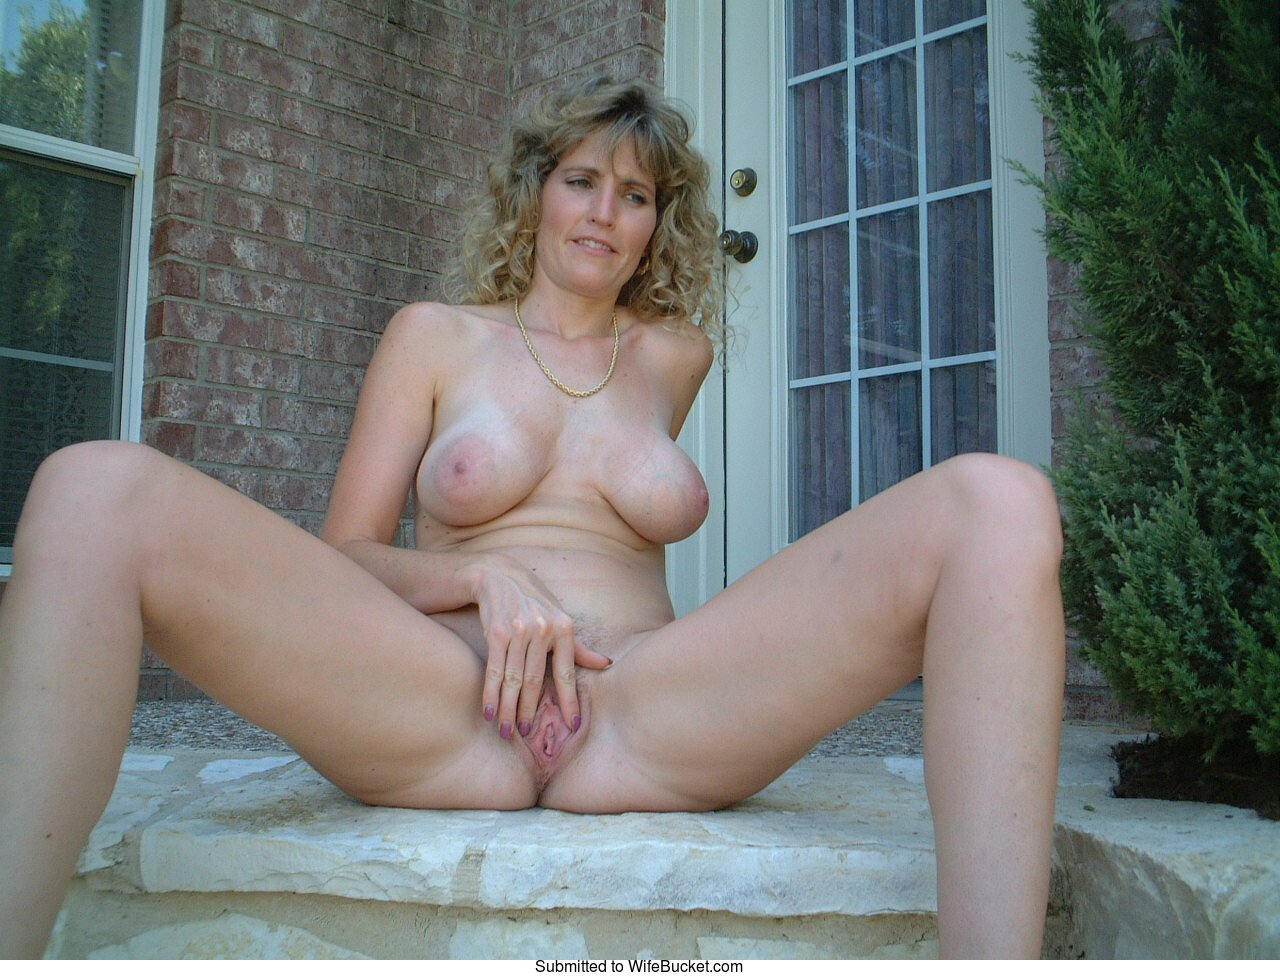 Wife photo naked blog